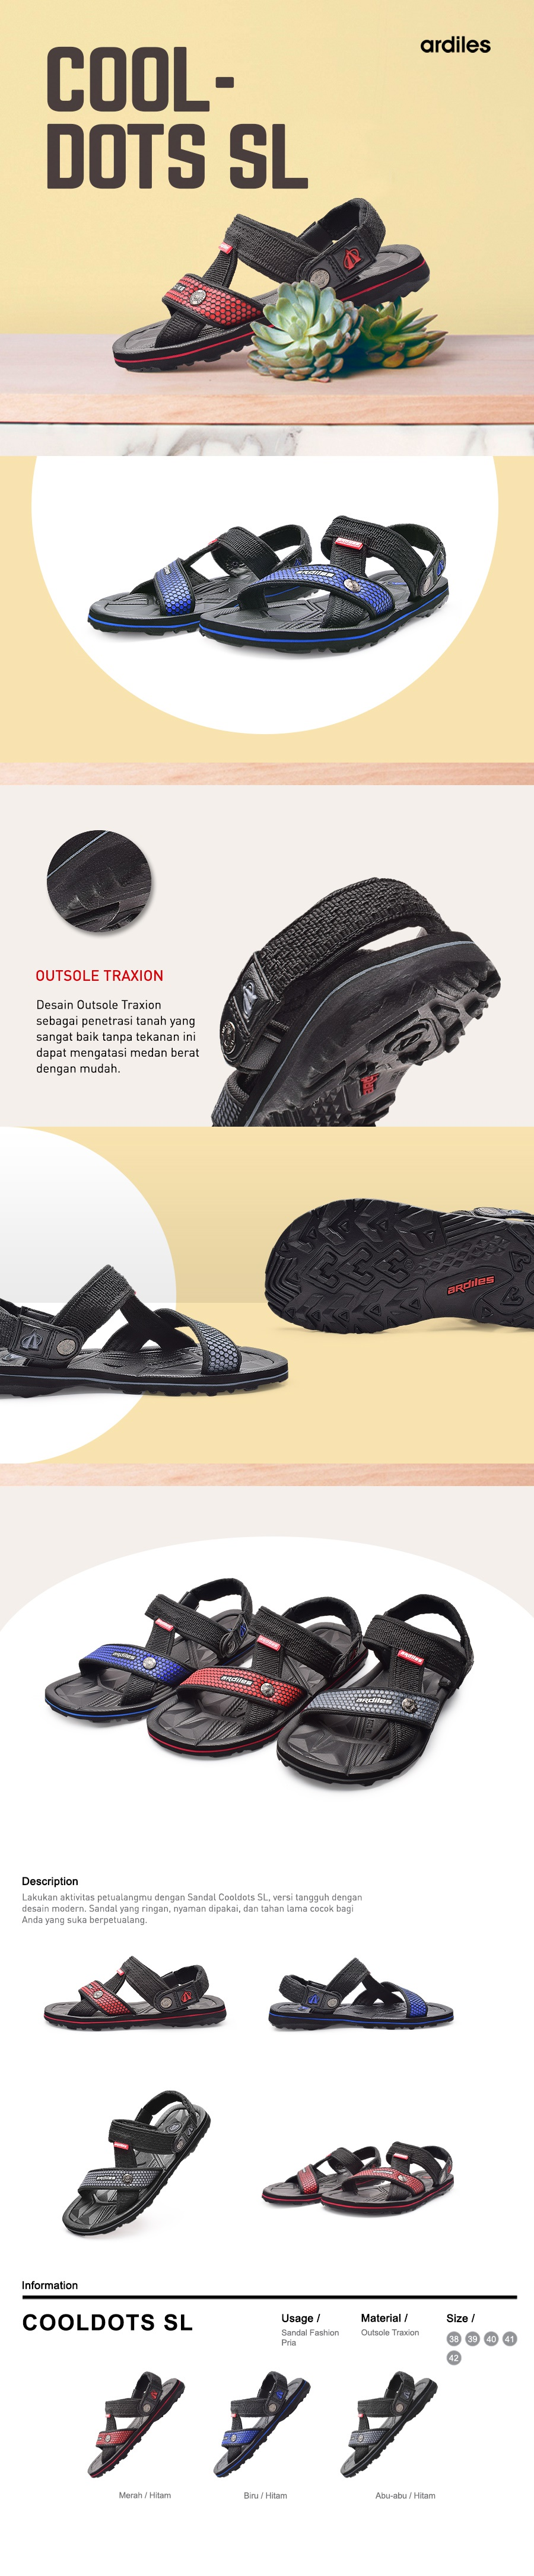 Buy Ardiles Best Seller Unisex Sandal And Slippers Deals For Only Men Dual On Fashion Hitam Abu 41 Opsi